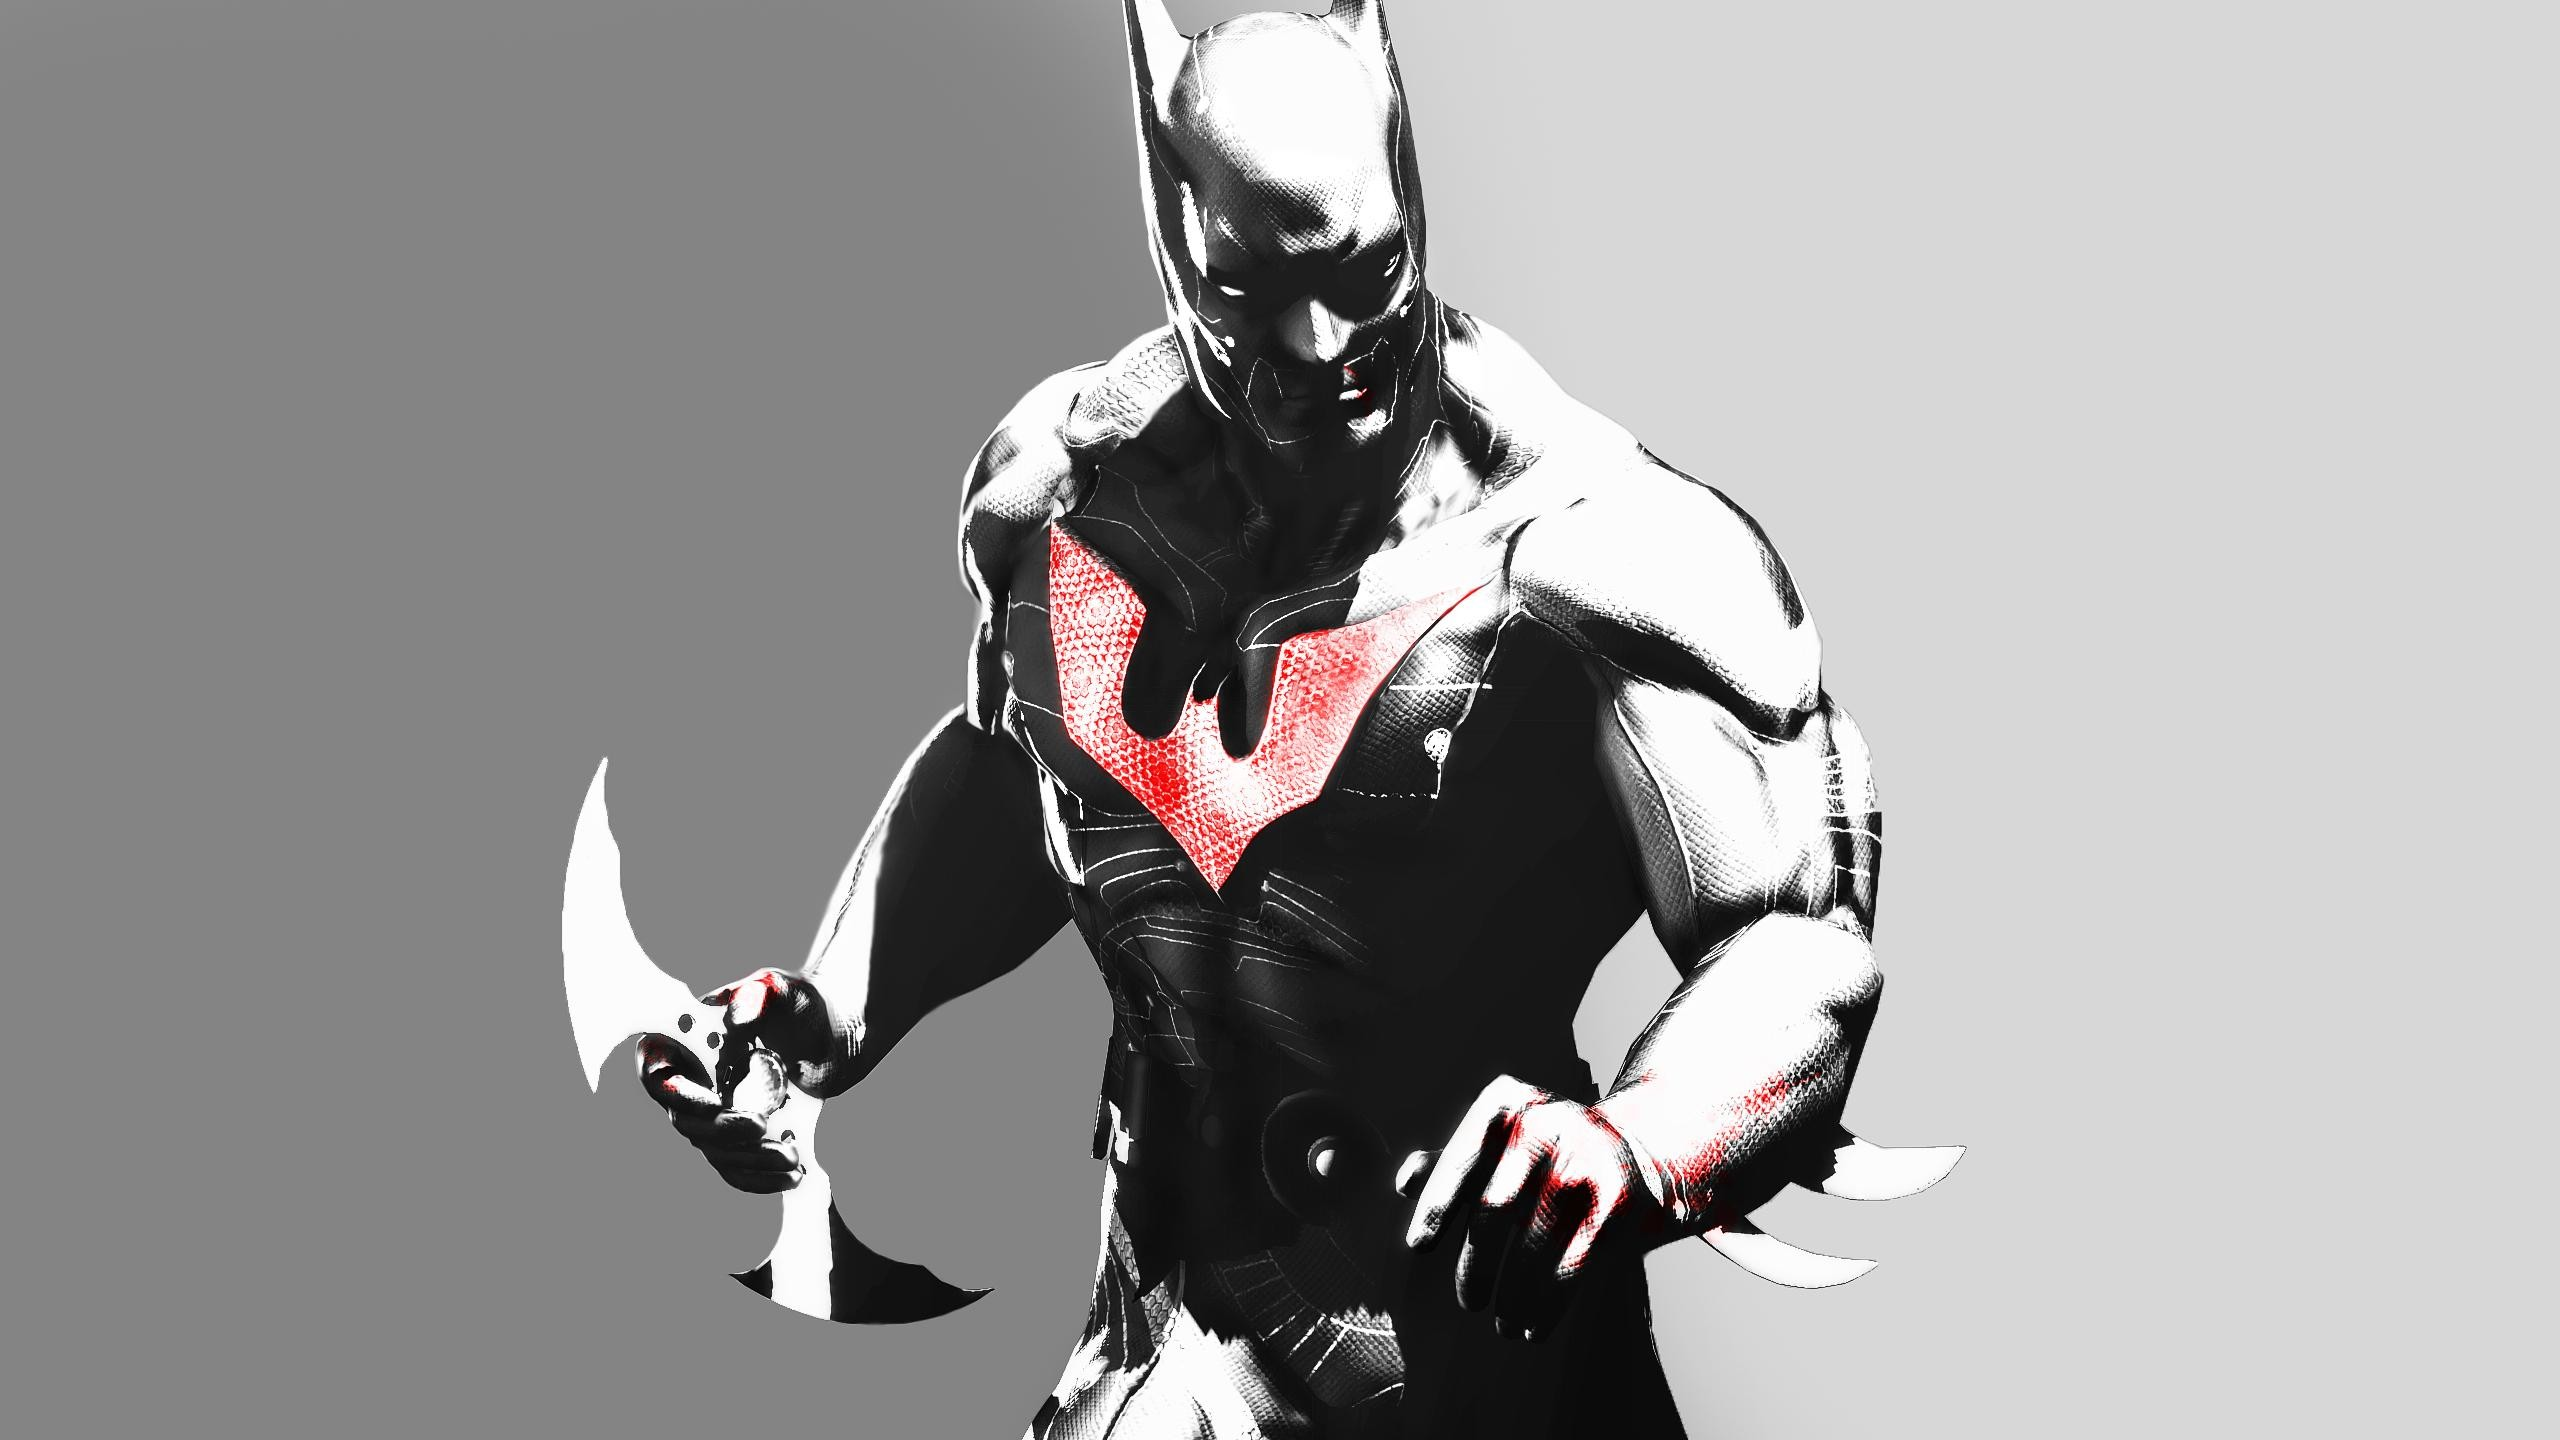 2560x1440 ... Smartphone · Batman Beyond Wallpaper